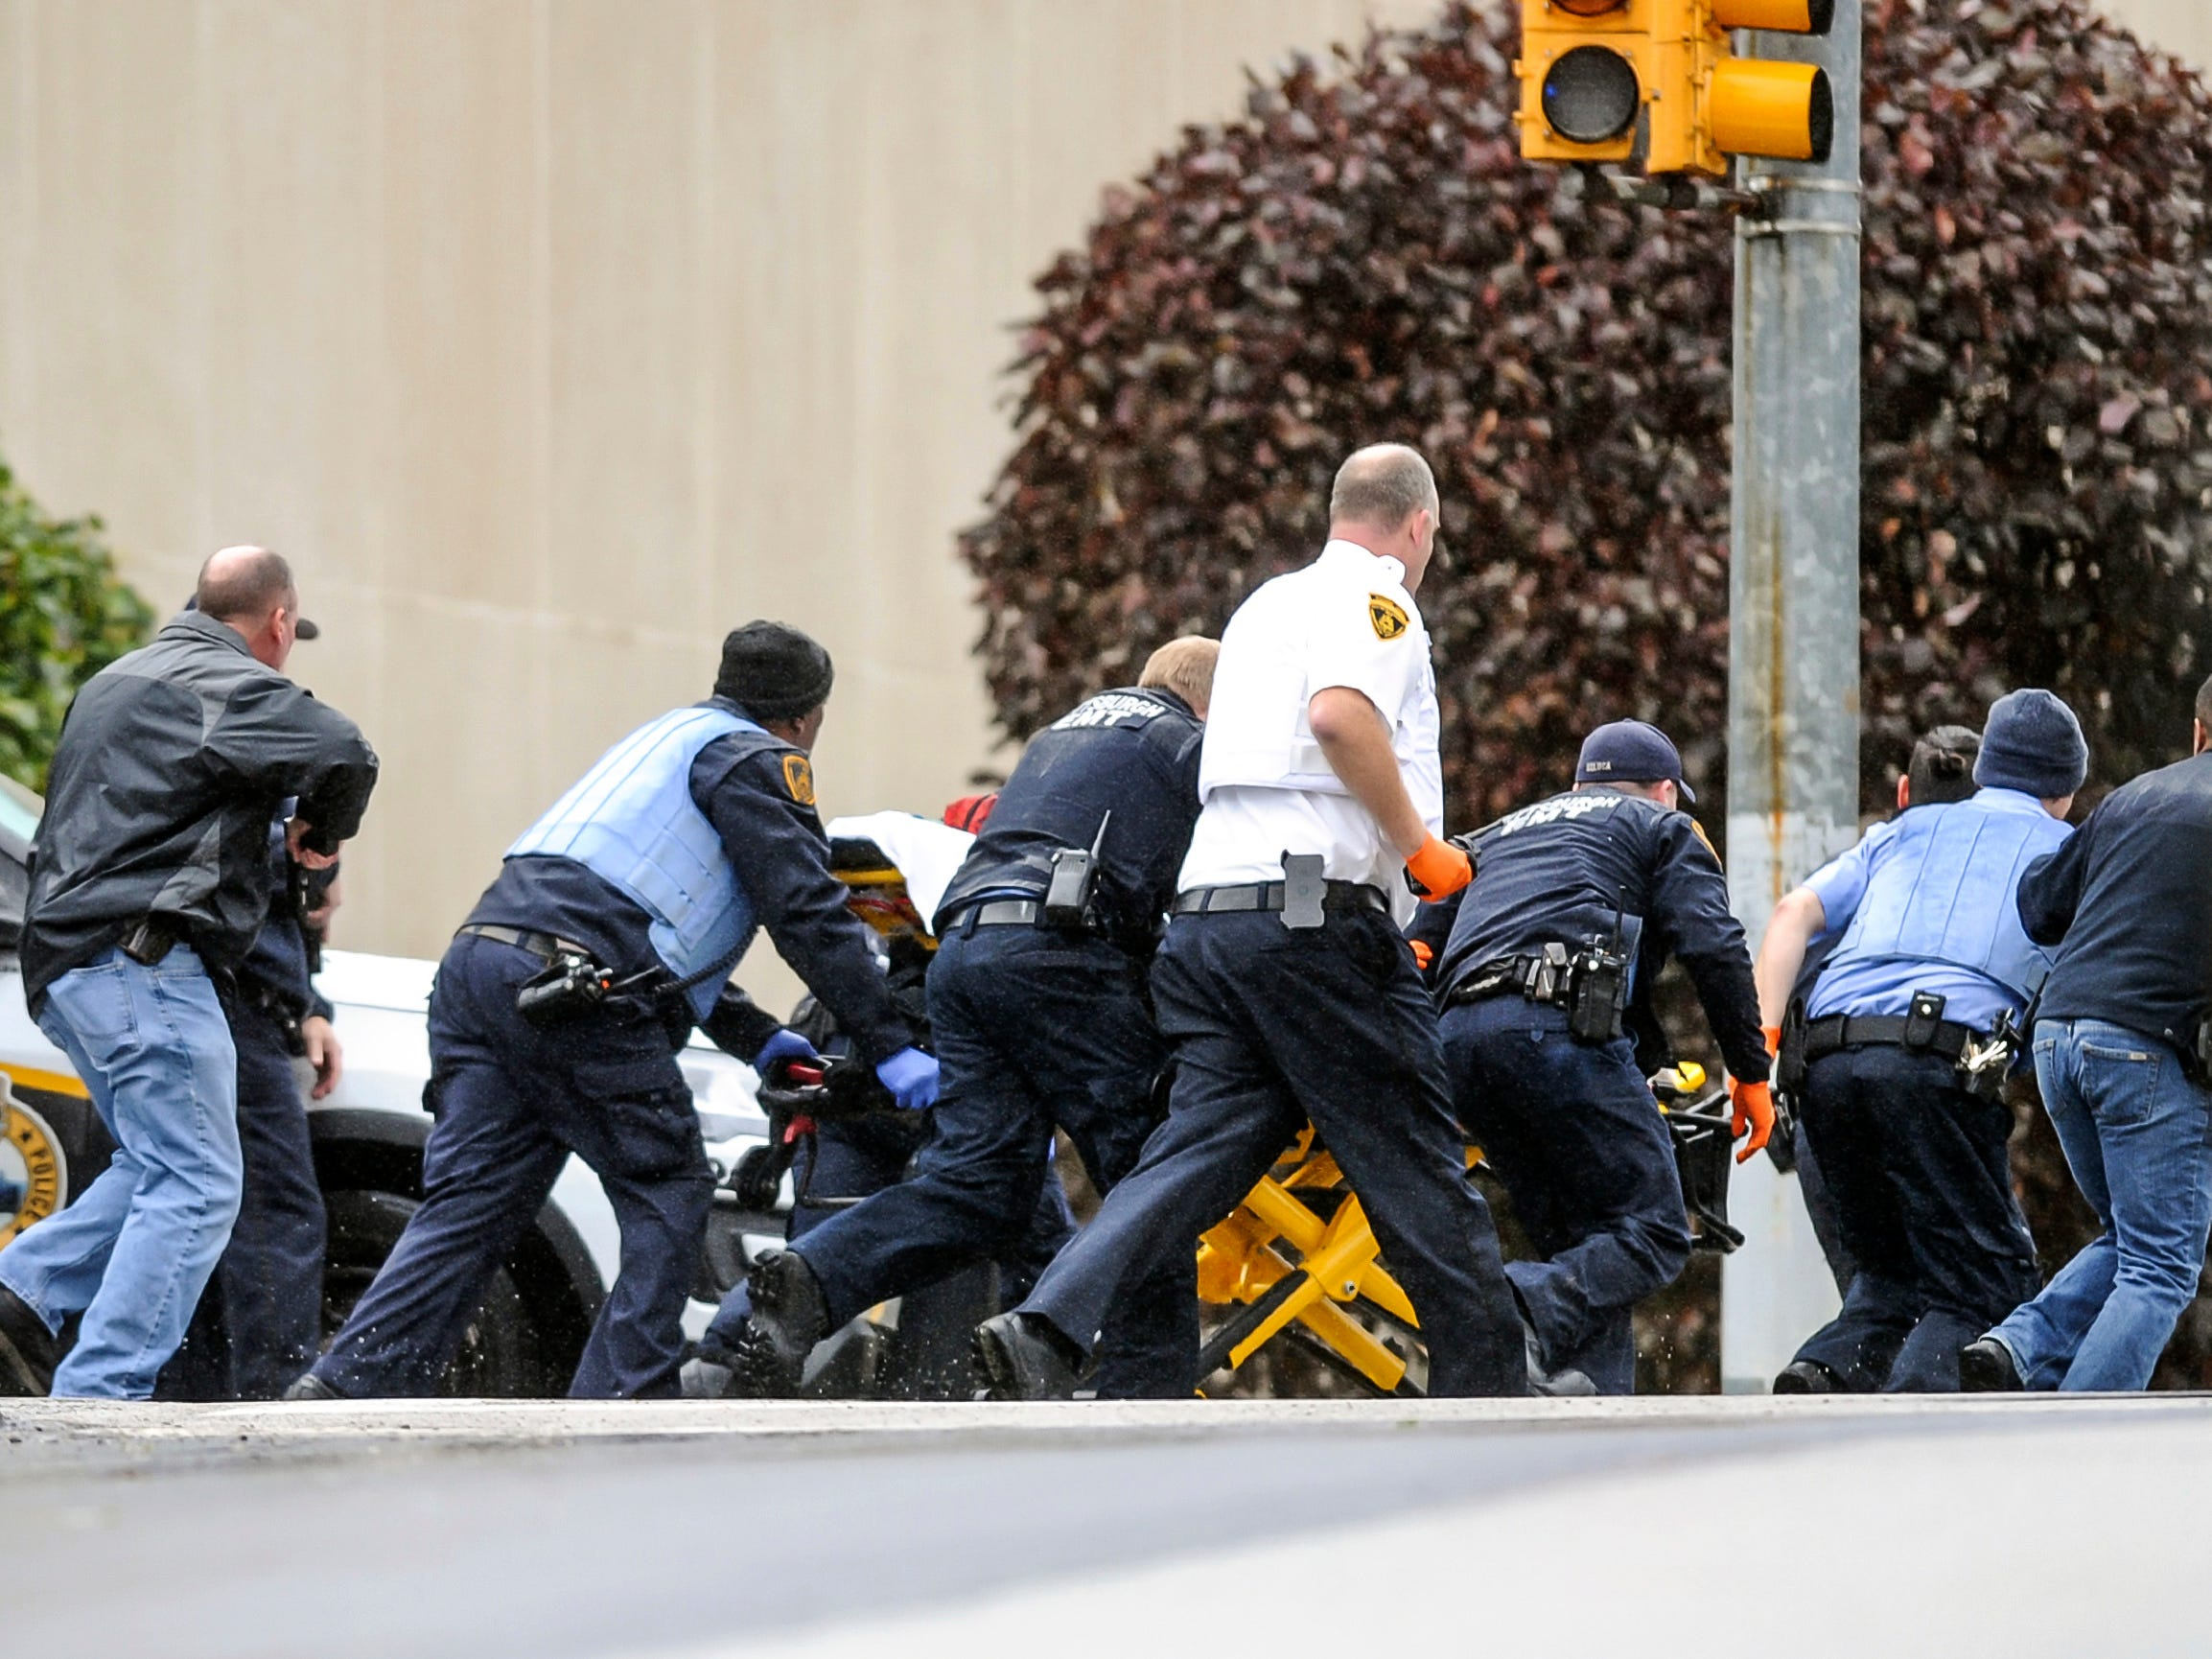 Law enforcement run with a person on a stretcher at the scene where multiple people were shot at the Tree of Life Congregation.